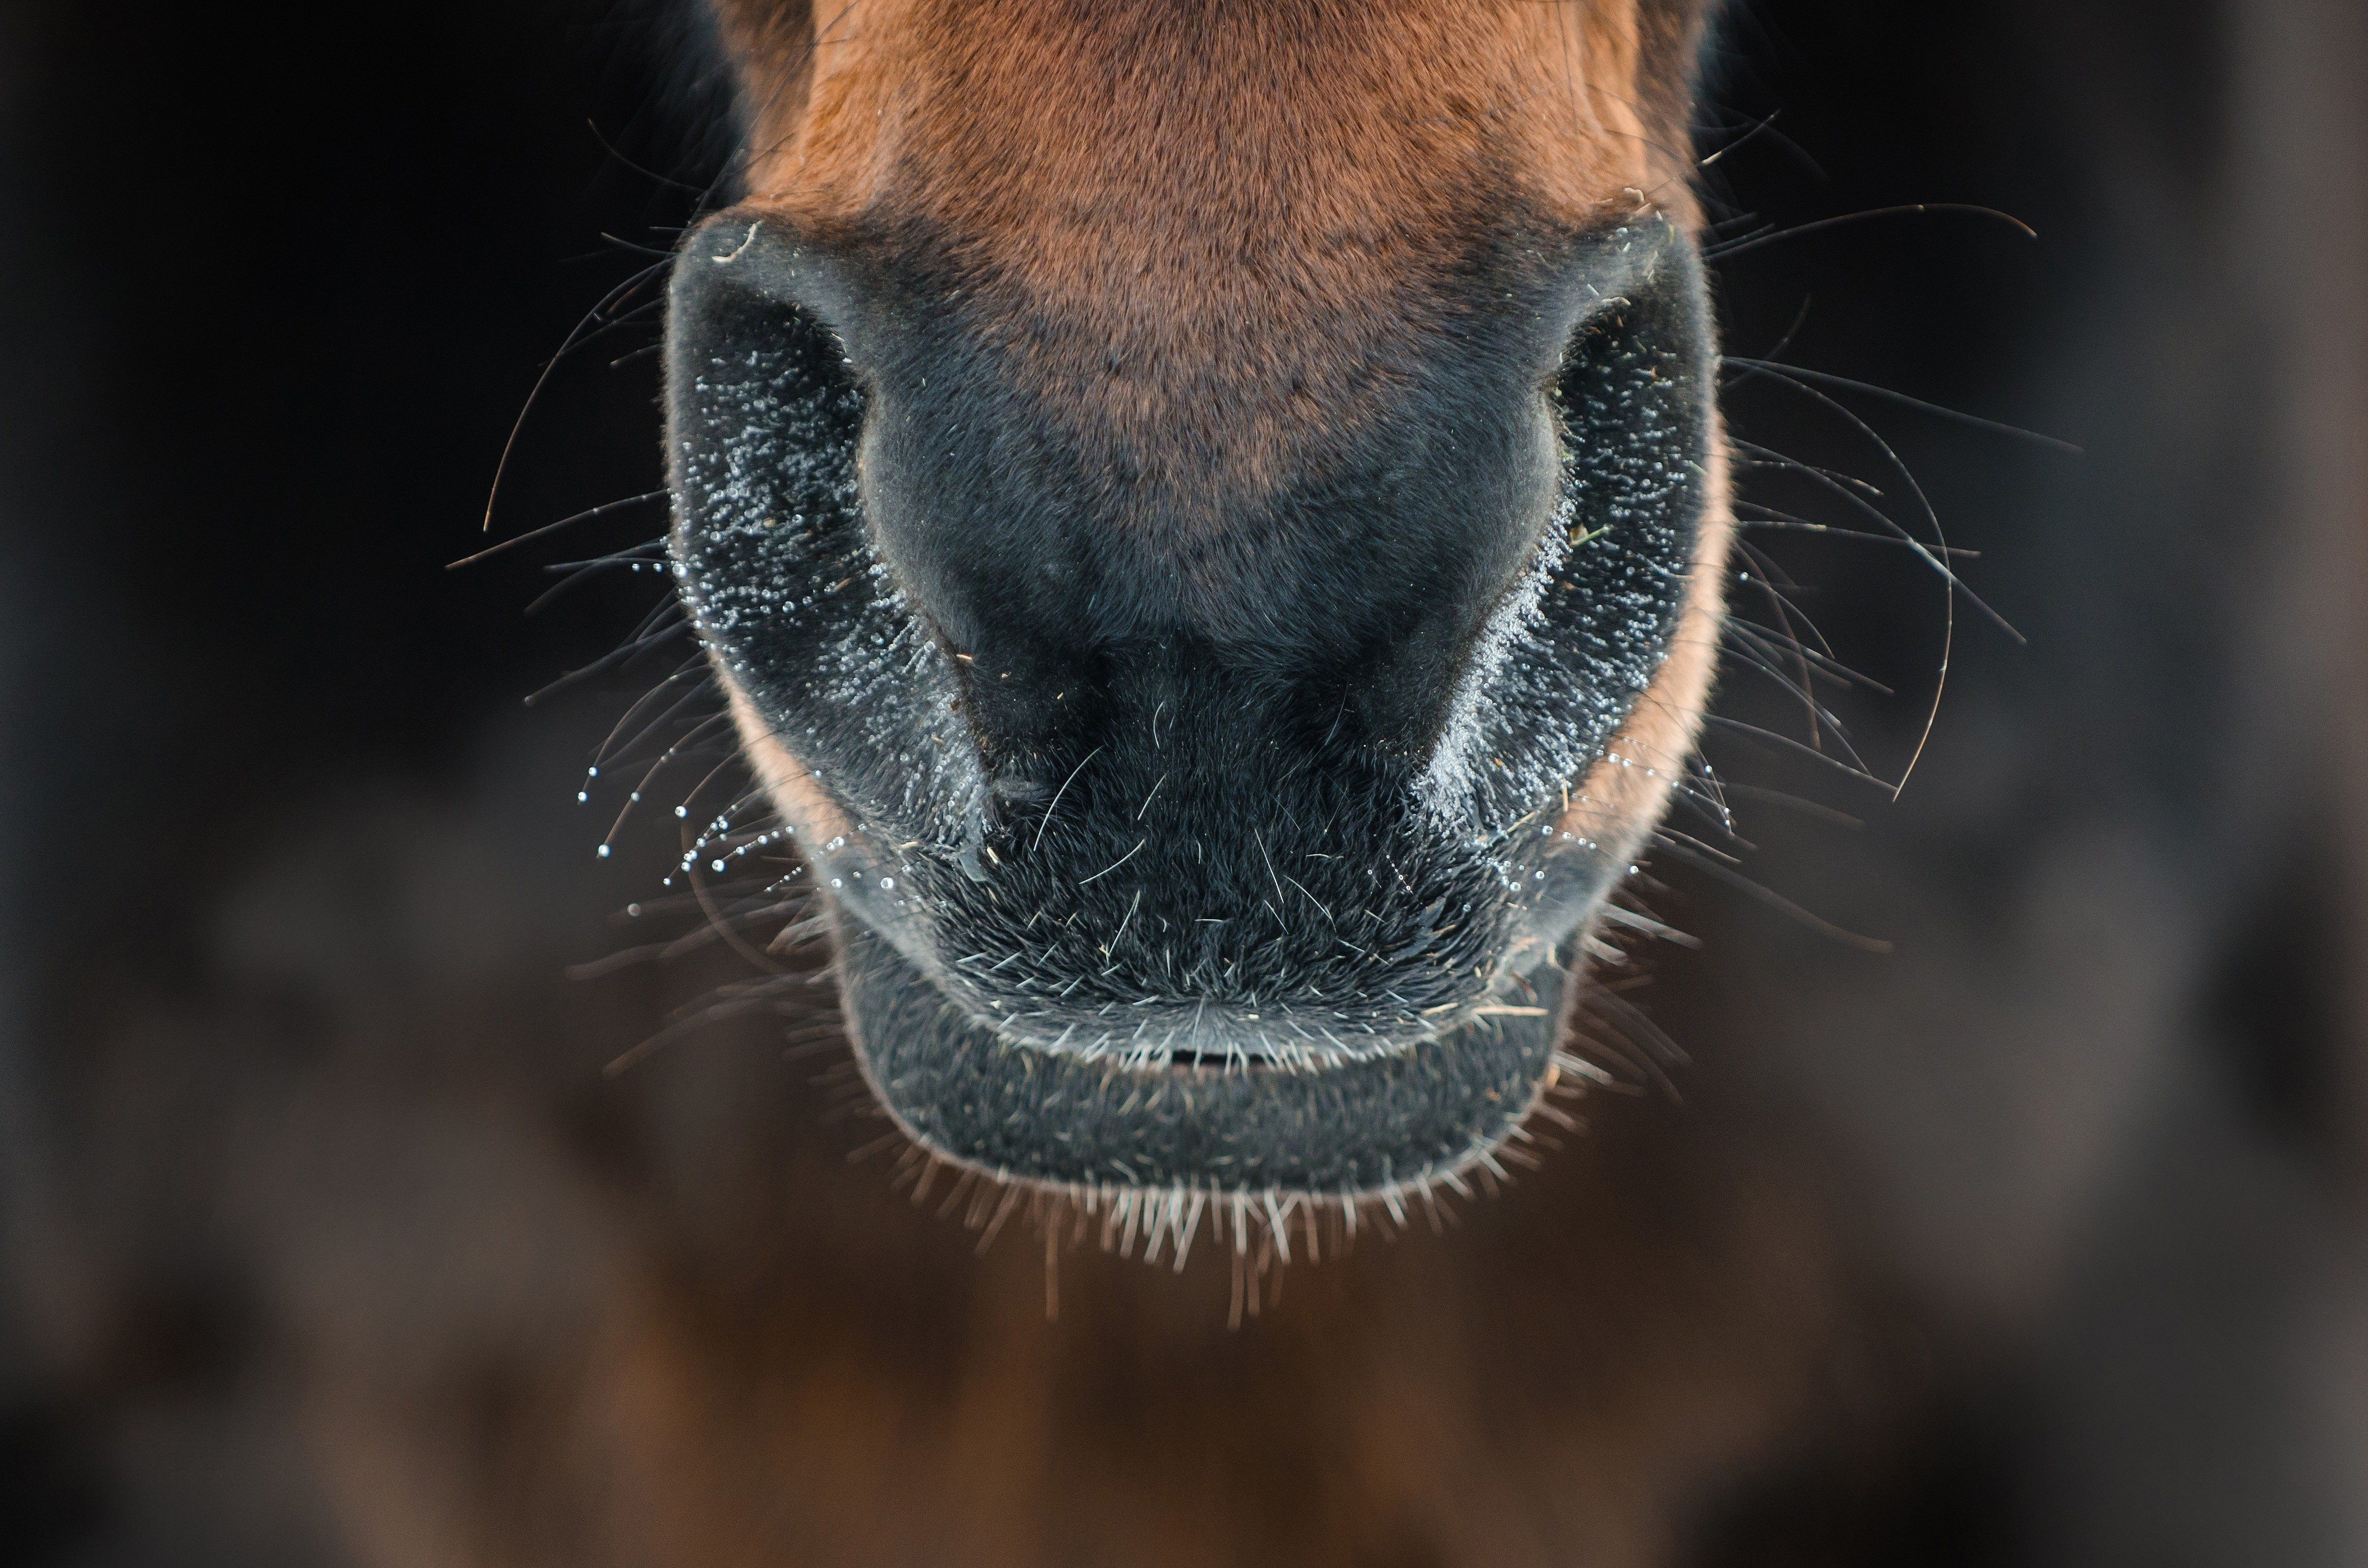 horses nostrils blowing steam